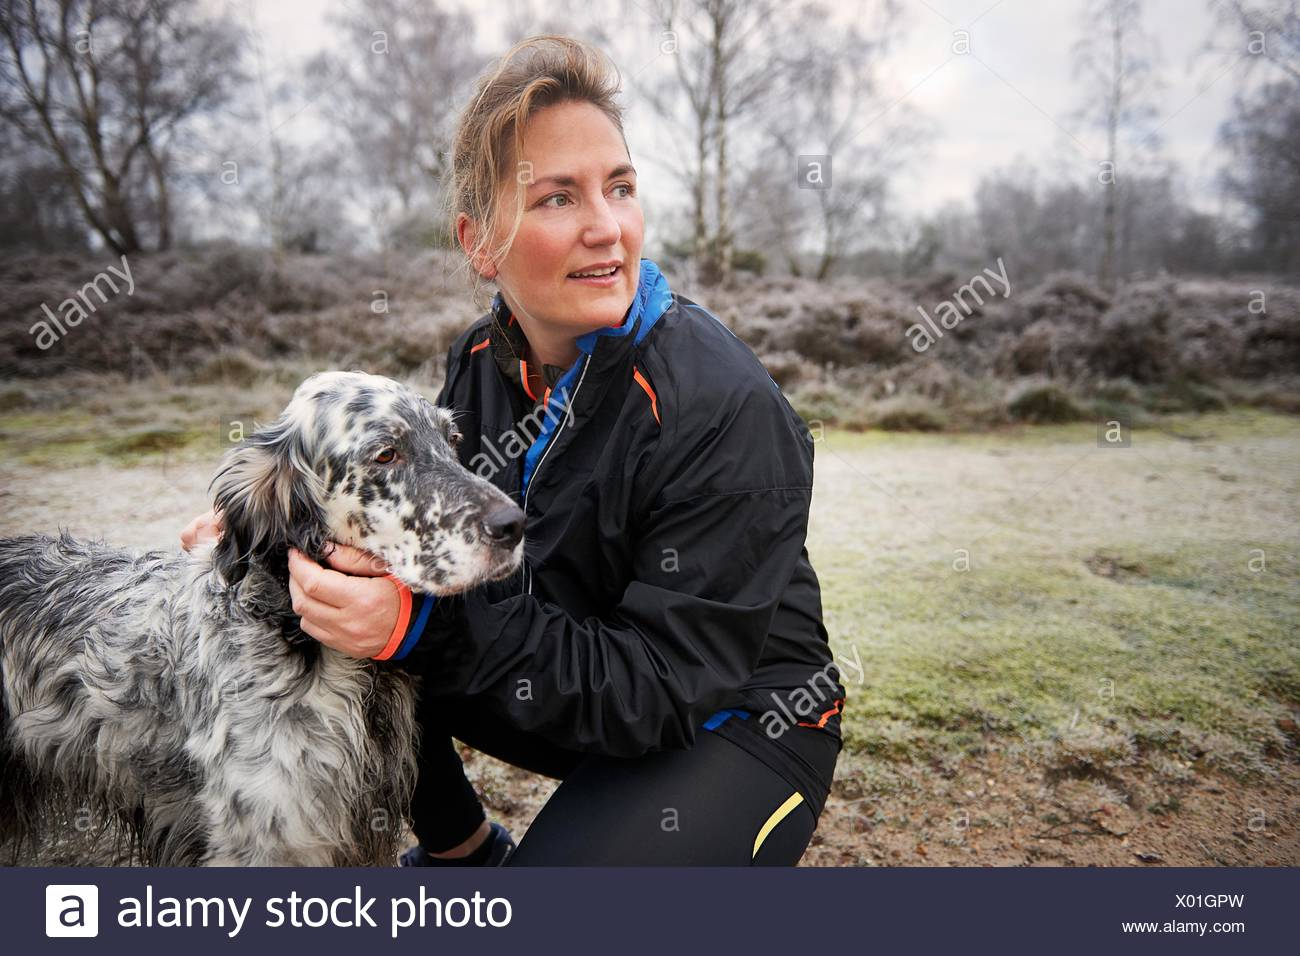 Mature woman crouching down stroking dog looking away - Stock Image